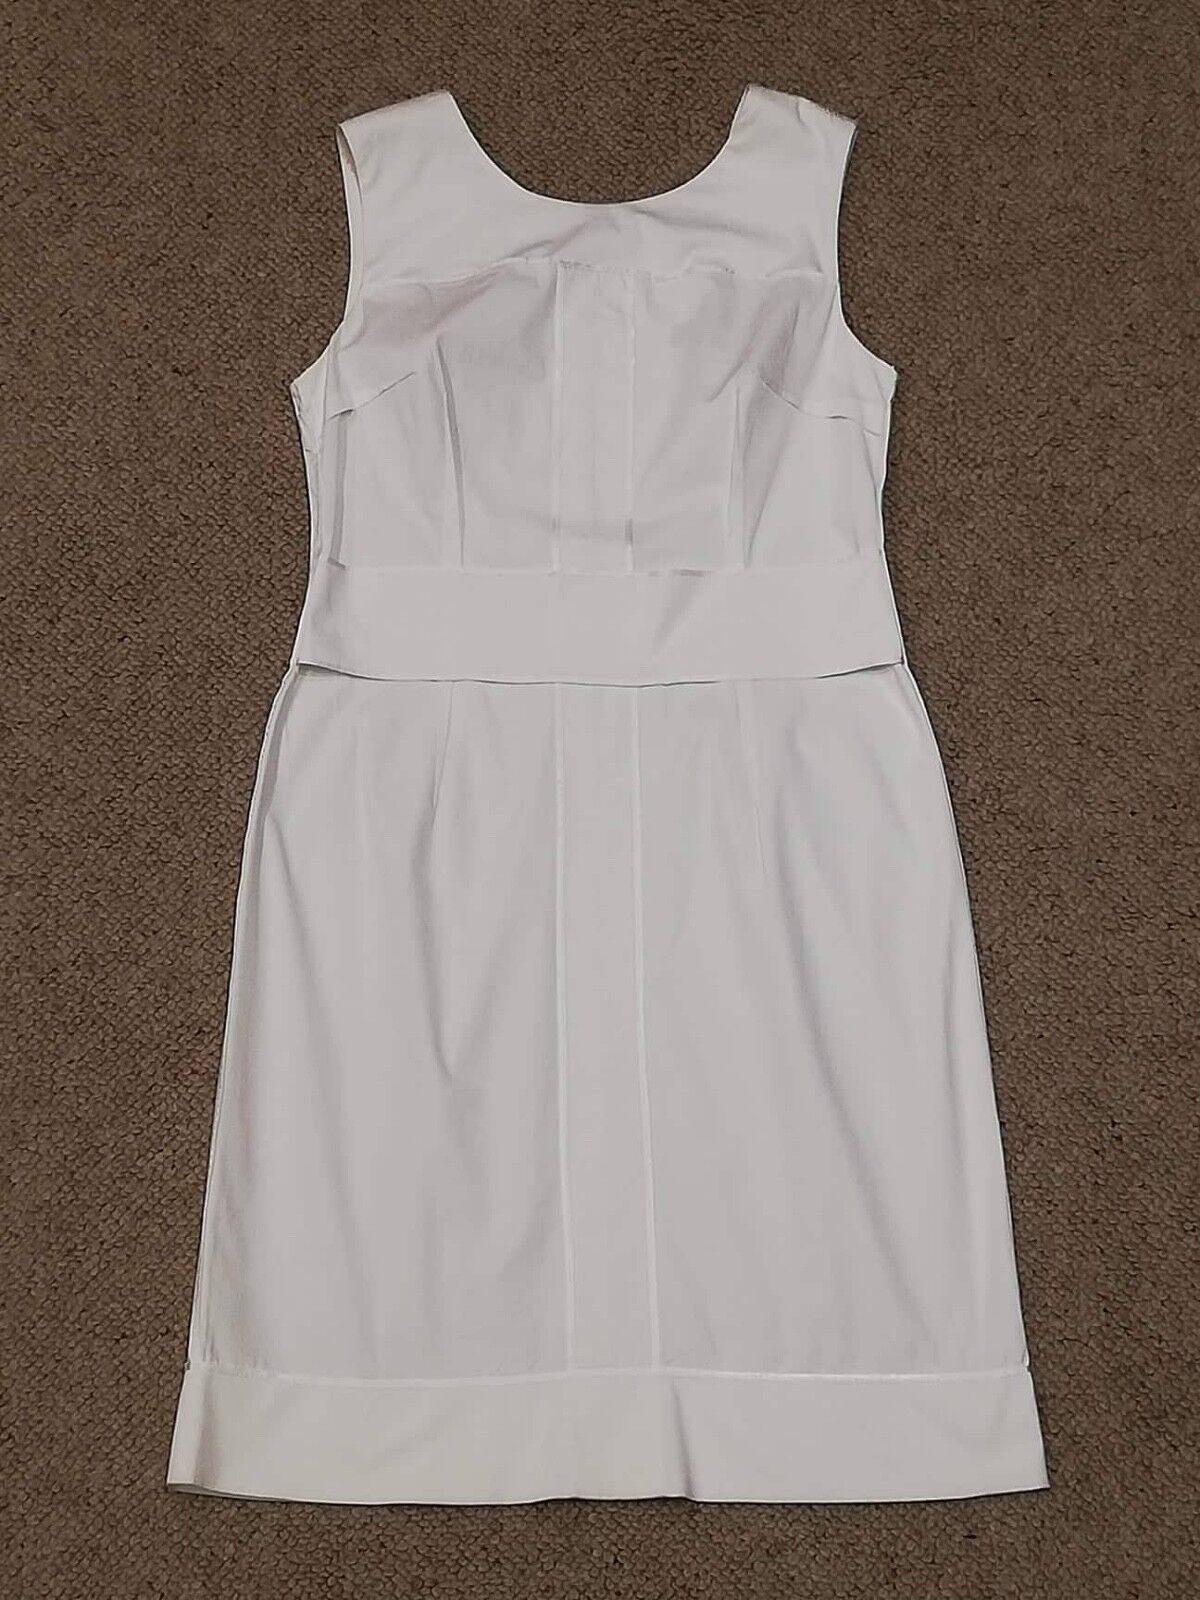 Apostrophe White Sleeveless Shift Fitted Pencil Cotton Dress Size 42 FR  14UK